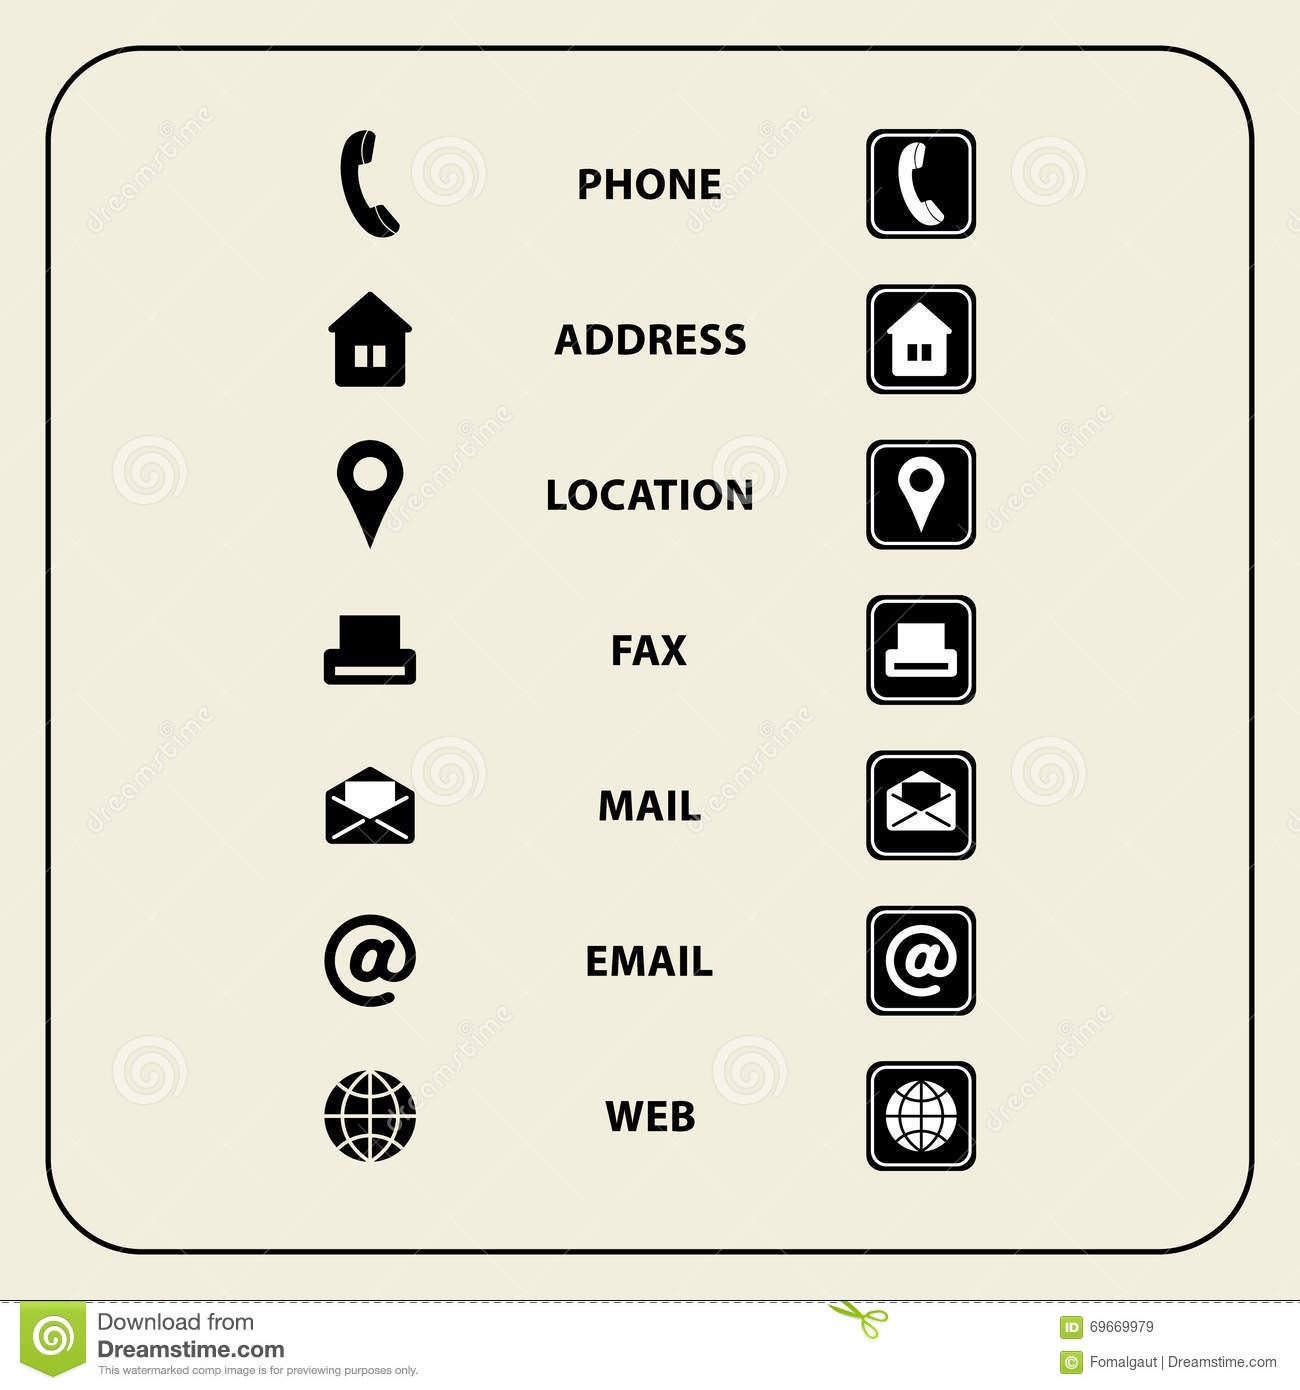 Set Of Web Icons For Business Cards, Finance And Communication